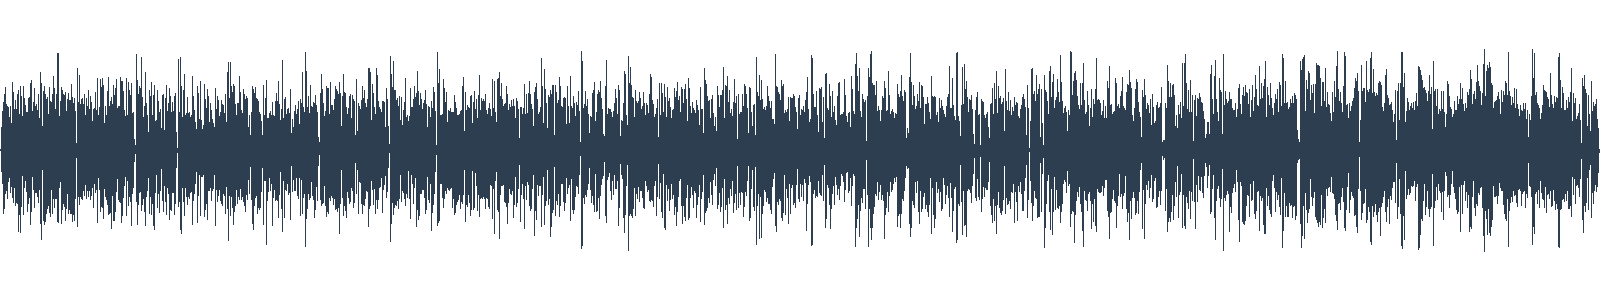 Jane Austen doma waveform